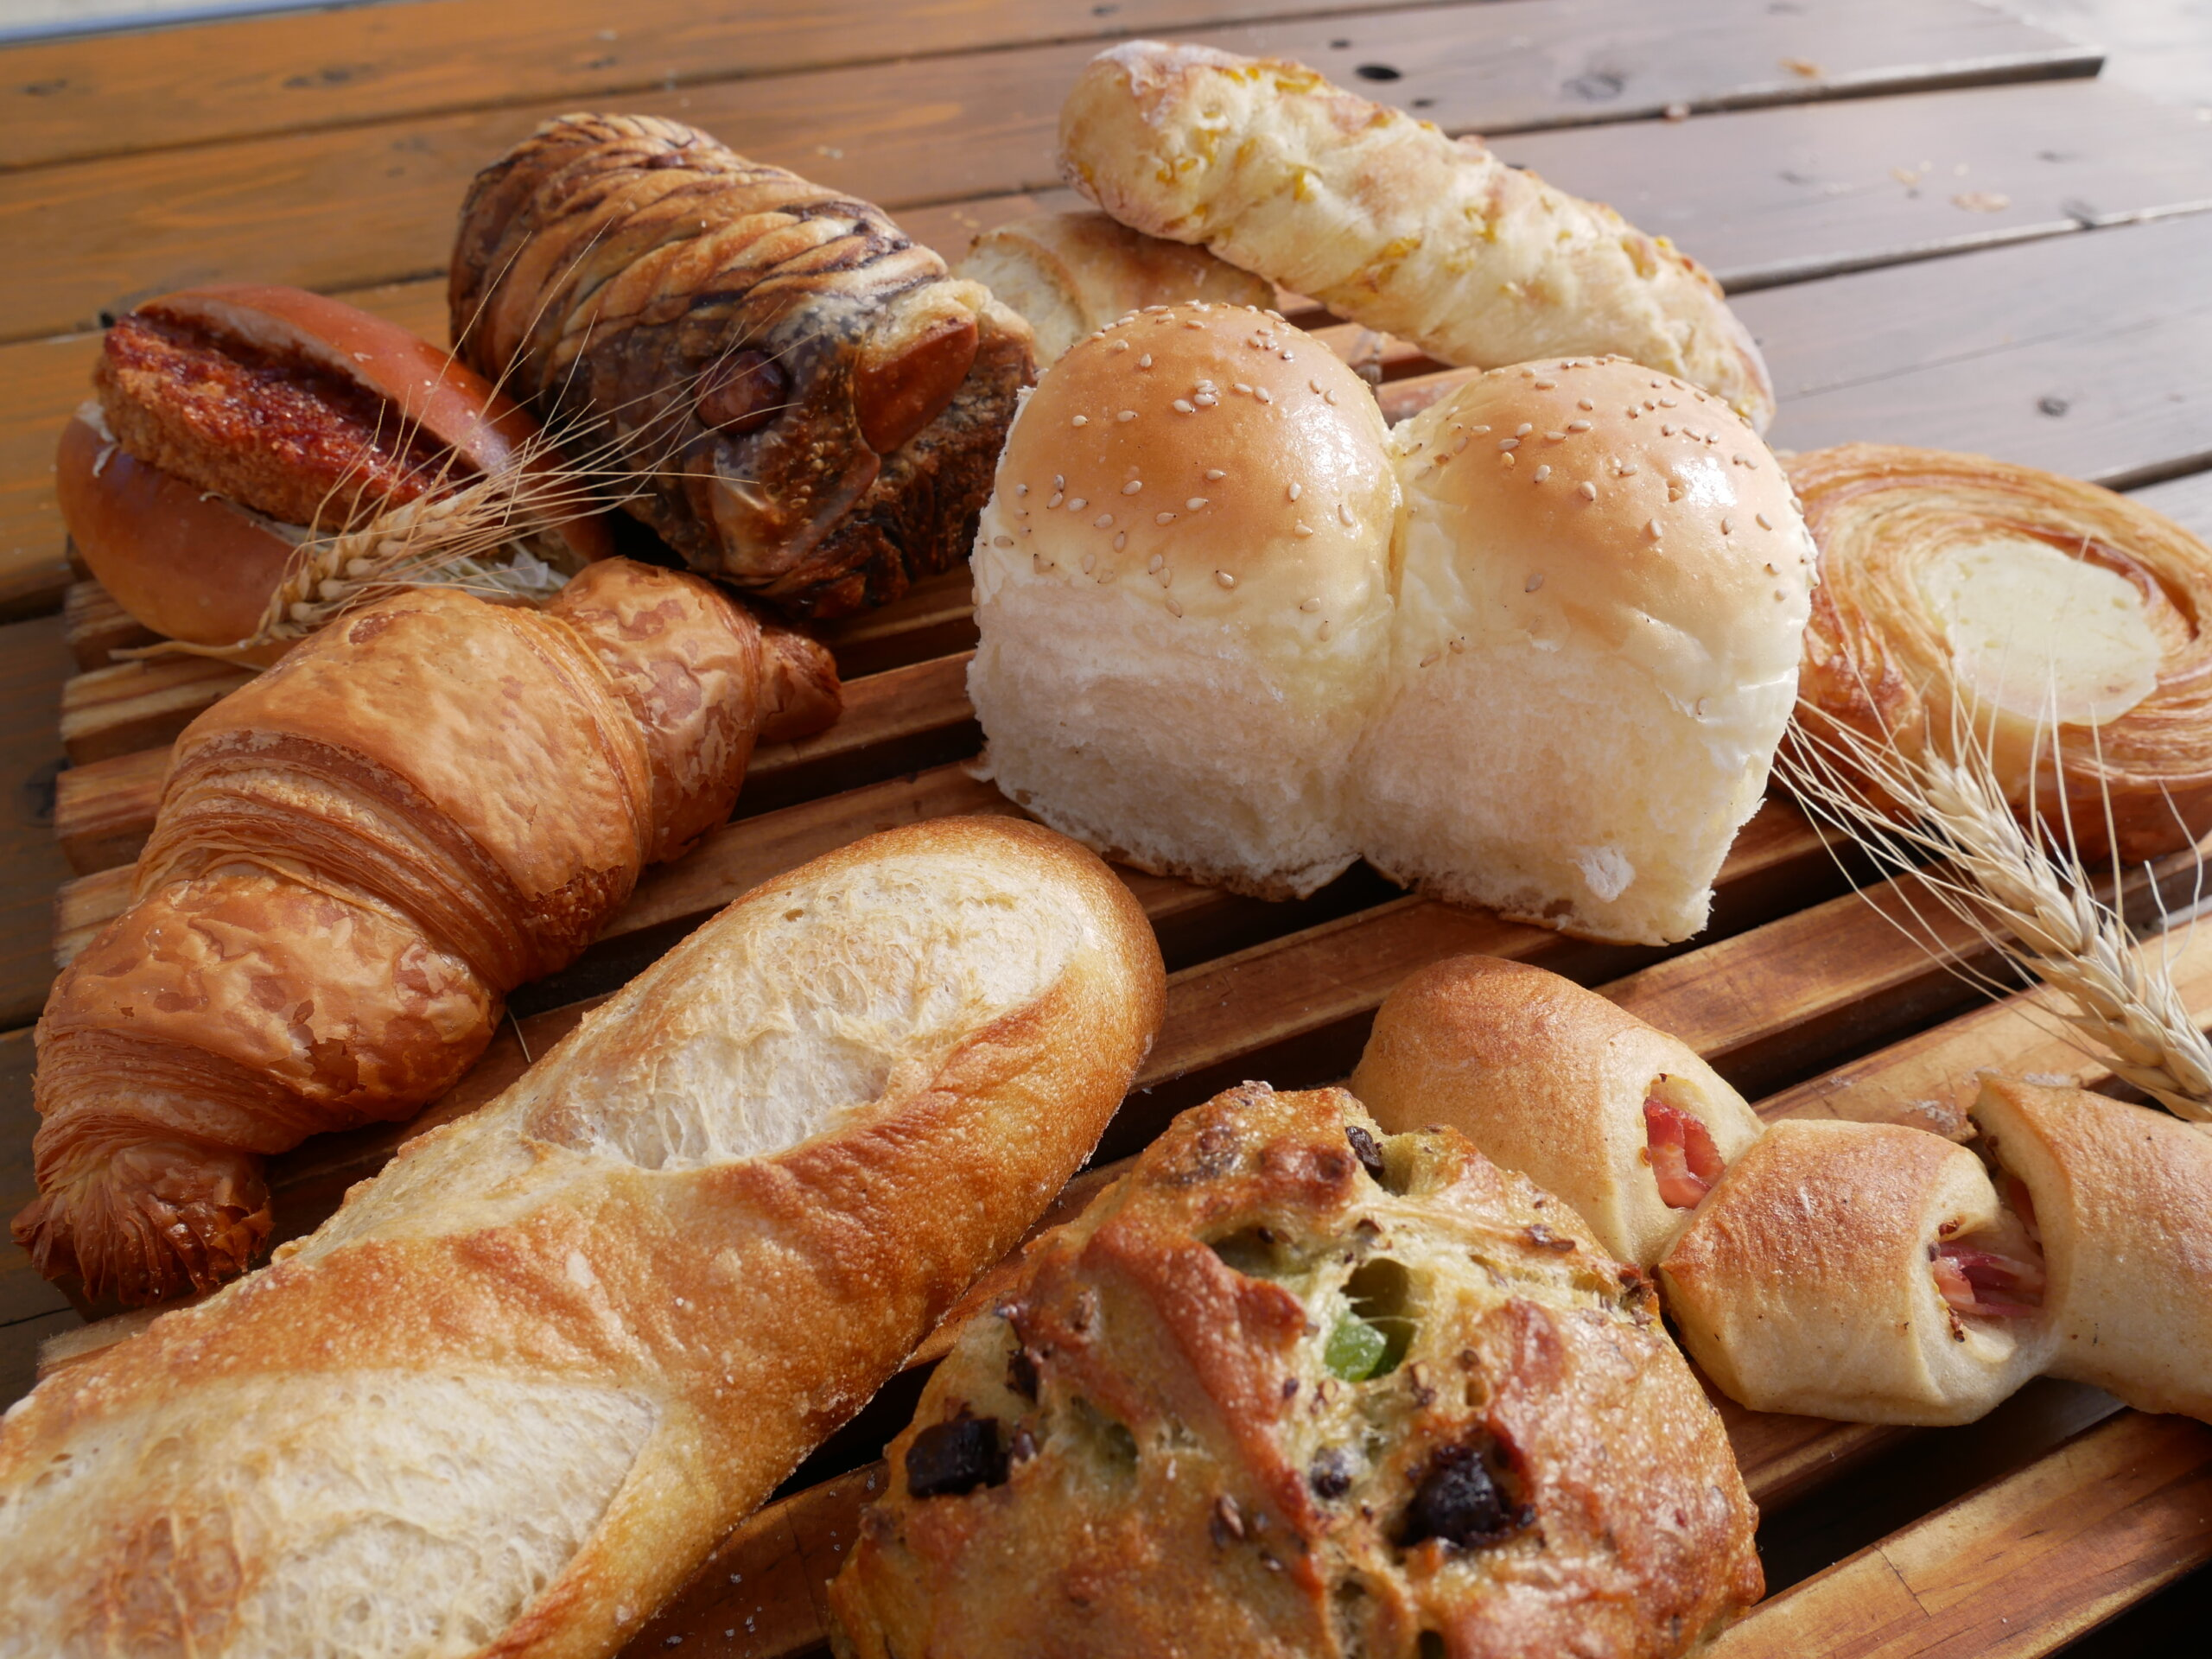 Mugioto: Local Ingredients Make for Out-of-this-World Baked Goods